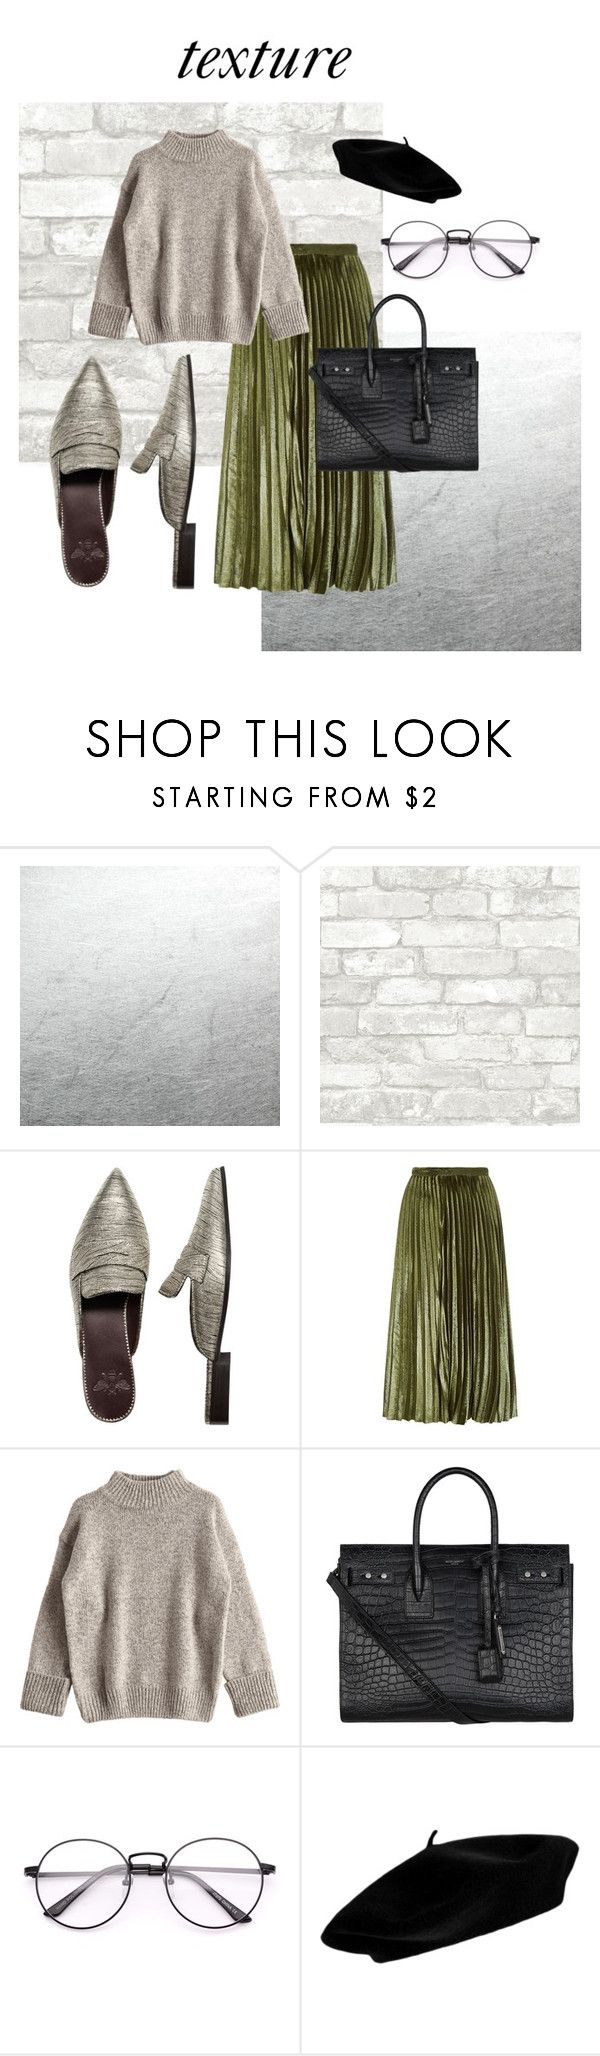 """""""Texture"""" by ehdesign ❤ liked on Polyvore featuring Bougeotte, Whistles, Yves Saint Laurent, skirts, shine, beret and middy"""